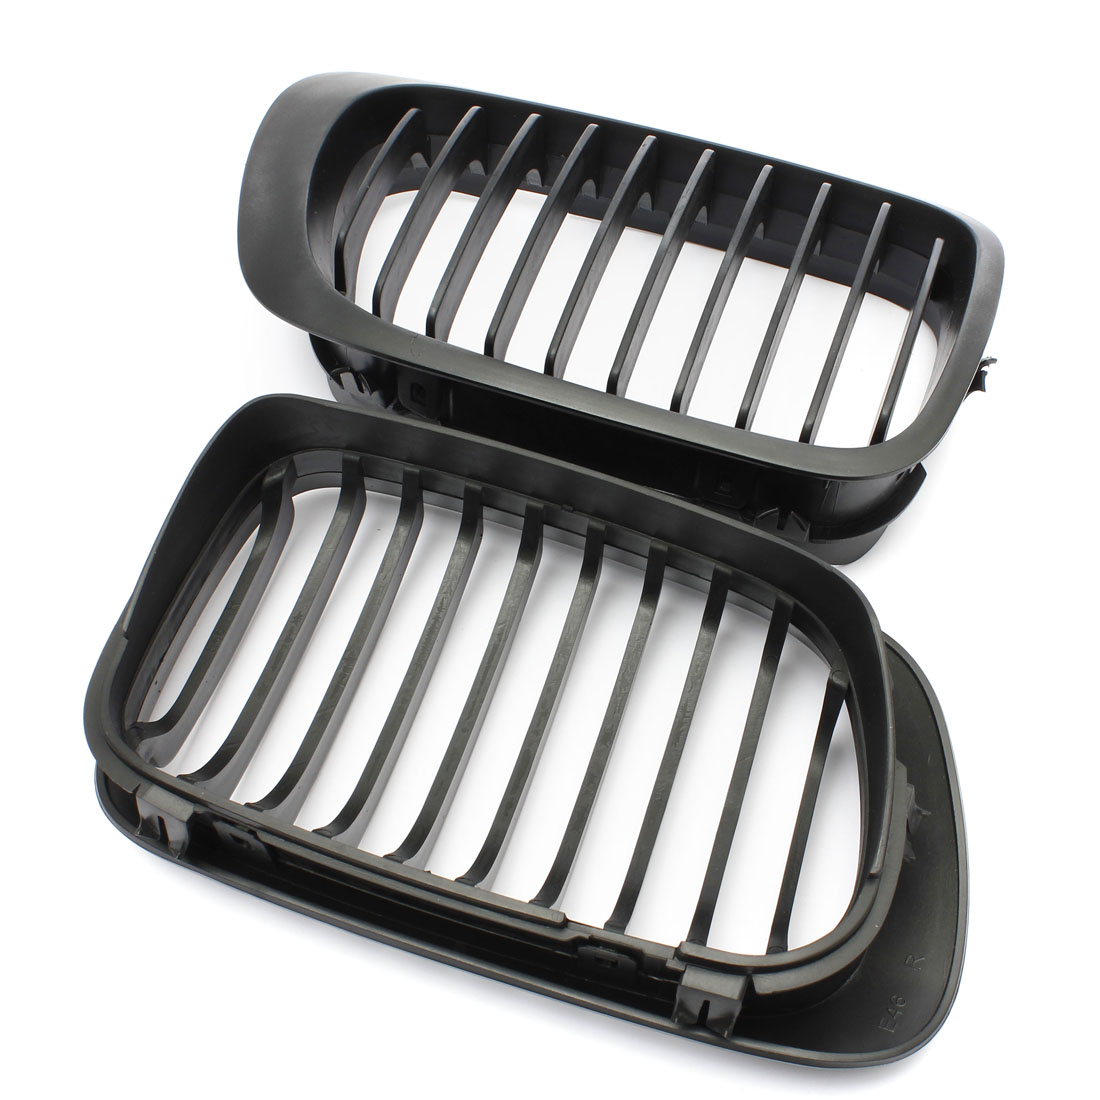 Bmw Grills: Gloss Black Front Kidney Hood Grille Grill For BMW E46 3